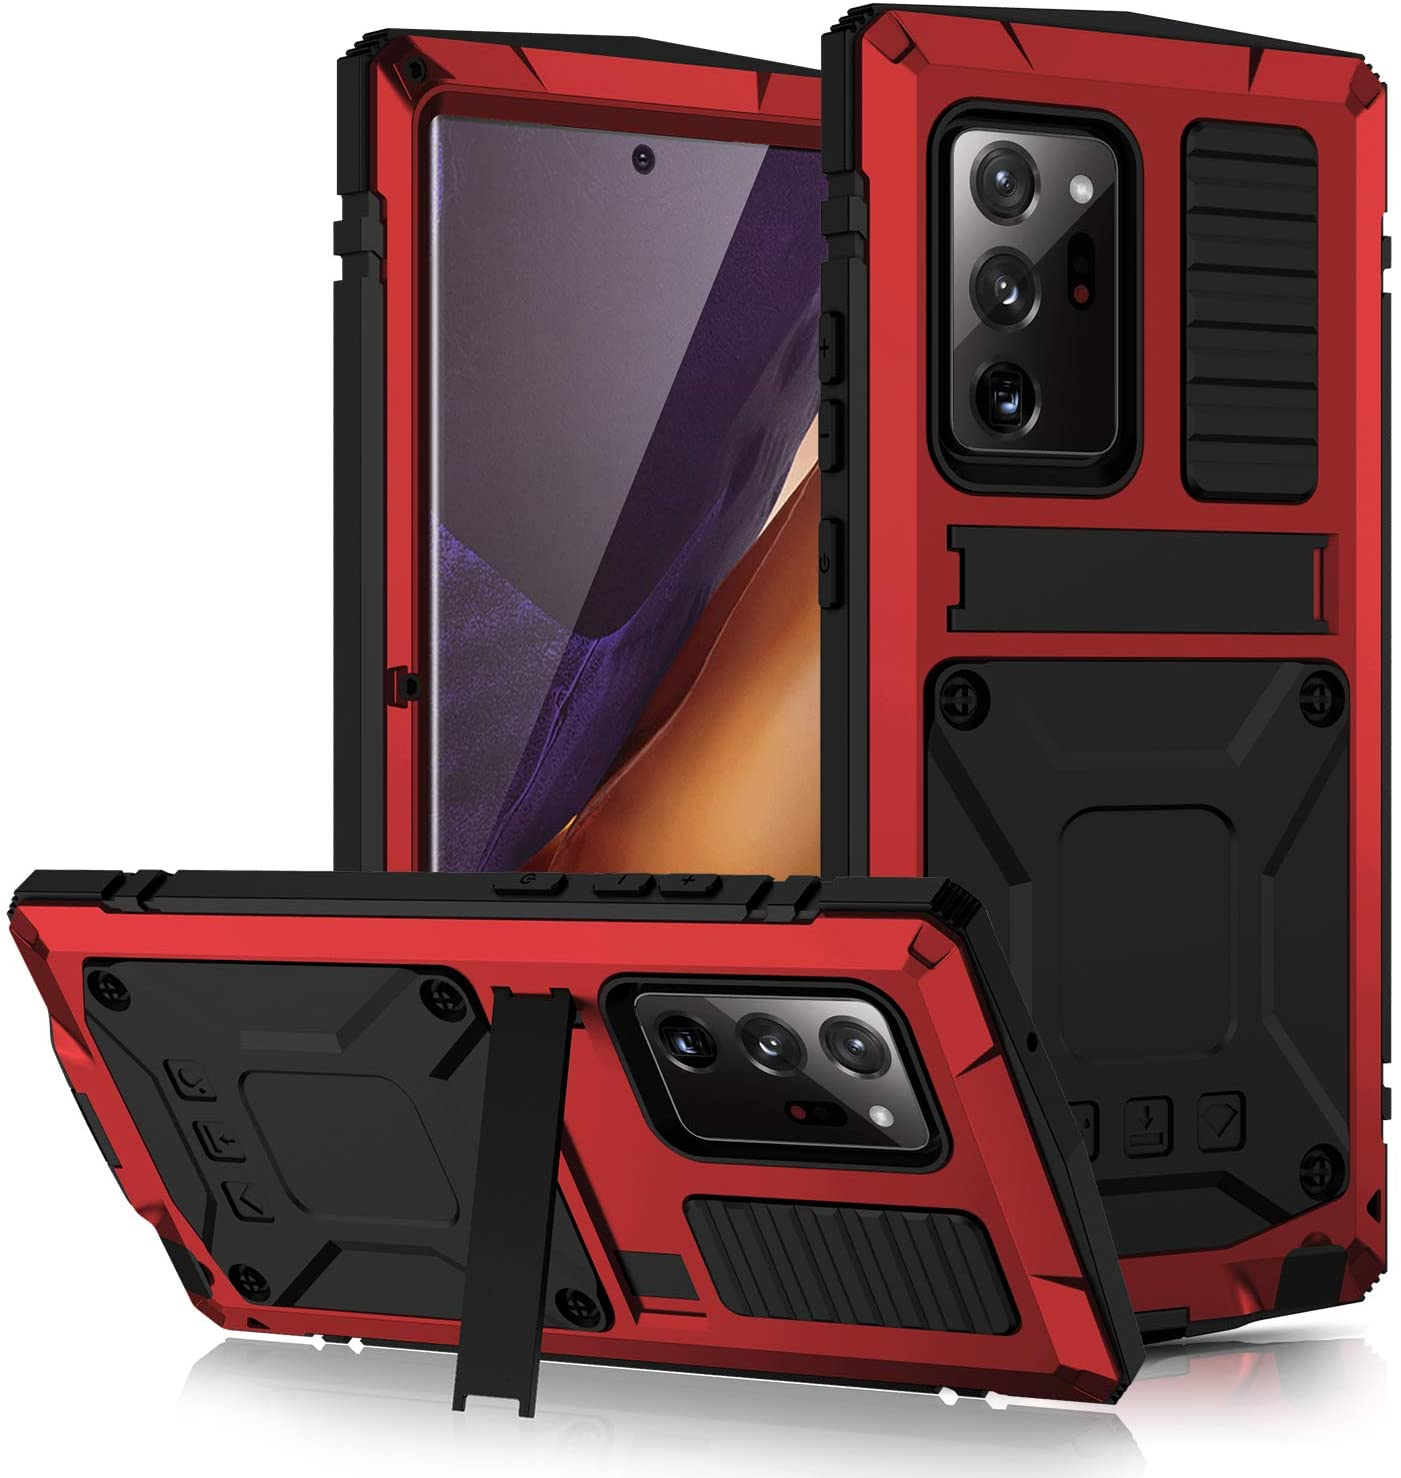 for Samsung Galaxy Note 20 Ultra Metal Case, Military Grade Drop Tested Heavy Duty Full Body Protective with Screen Protector Built-in Shockproof Dustproof Case(Note 20 Ultra Red)